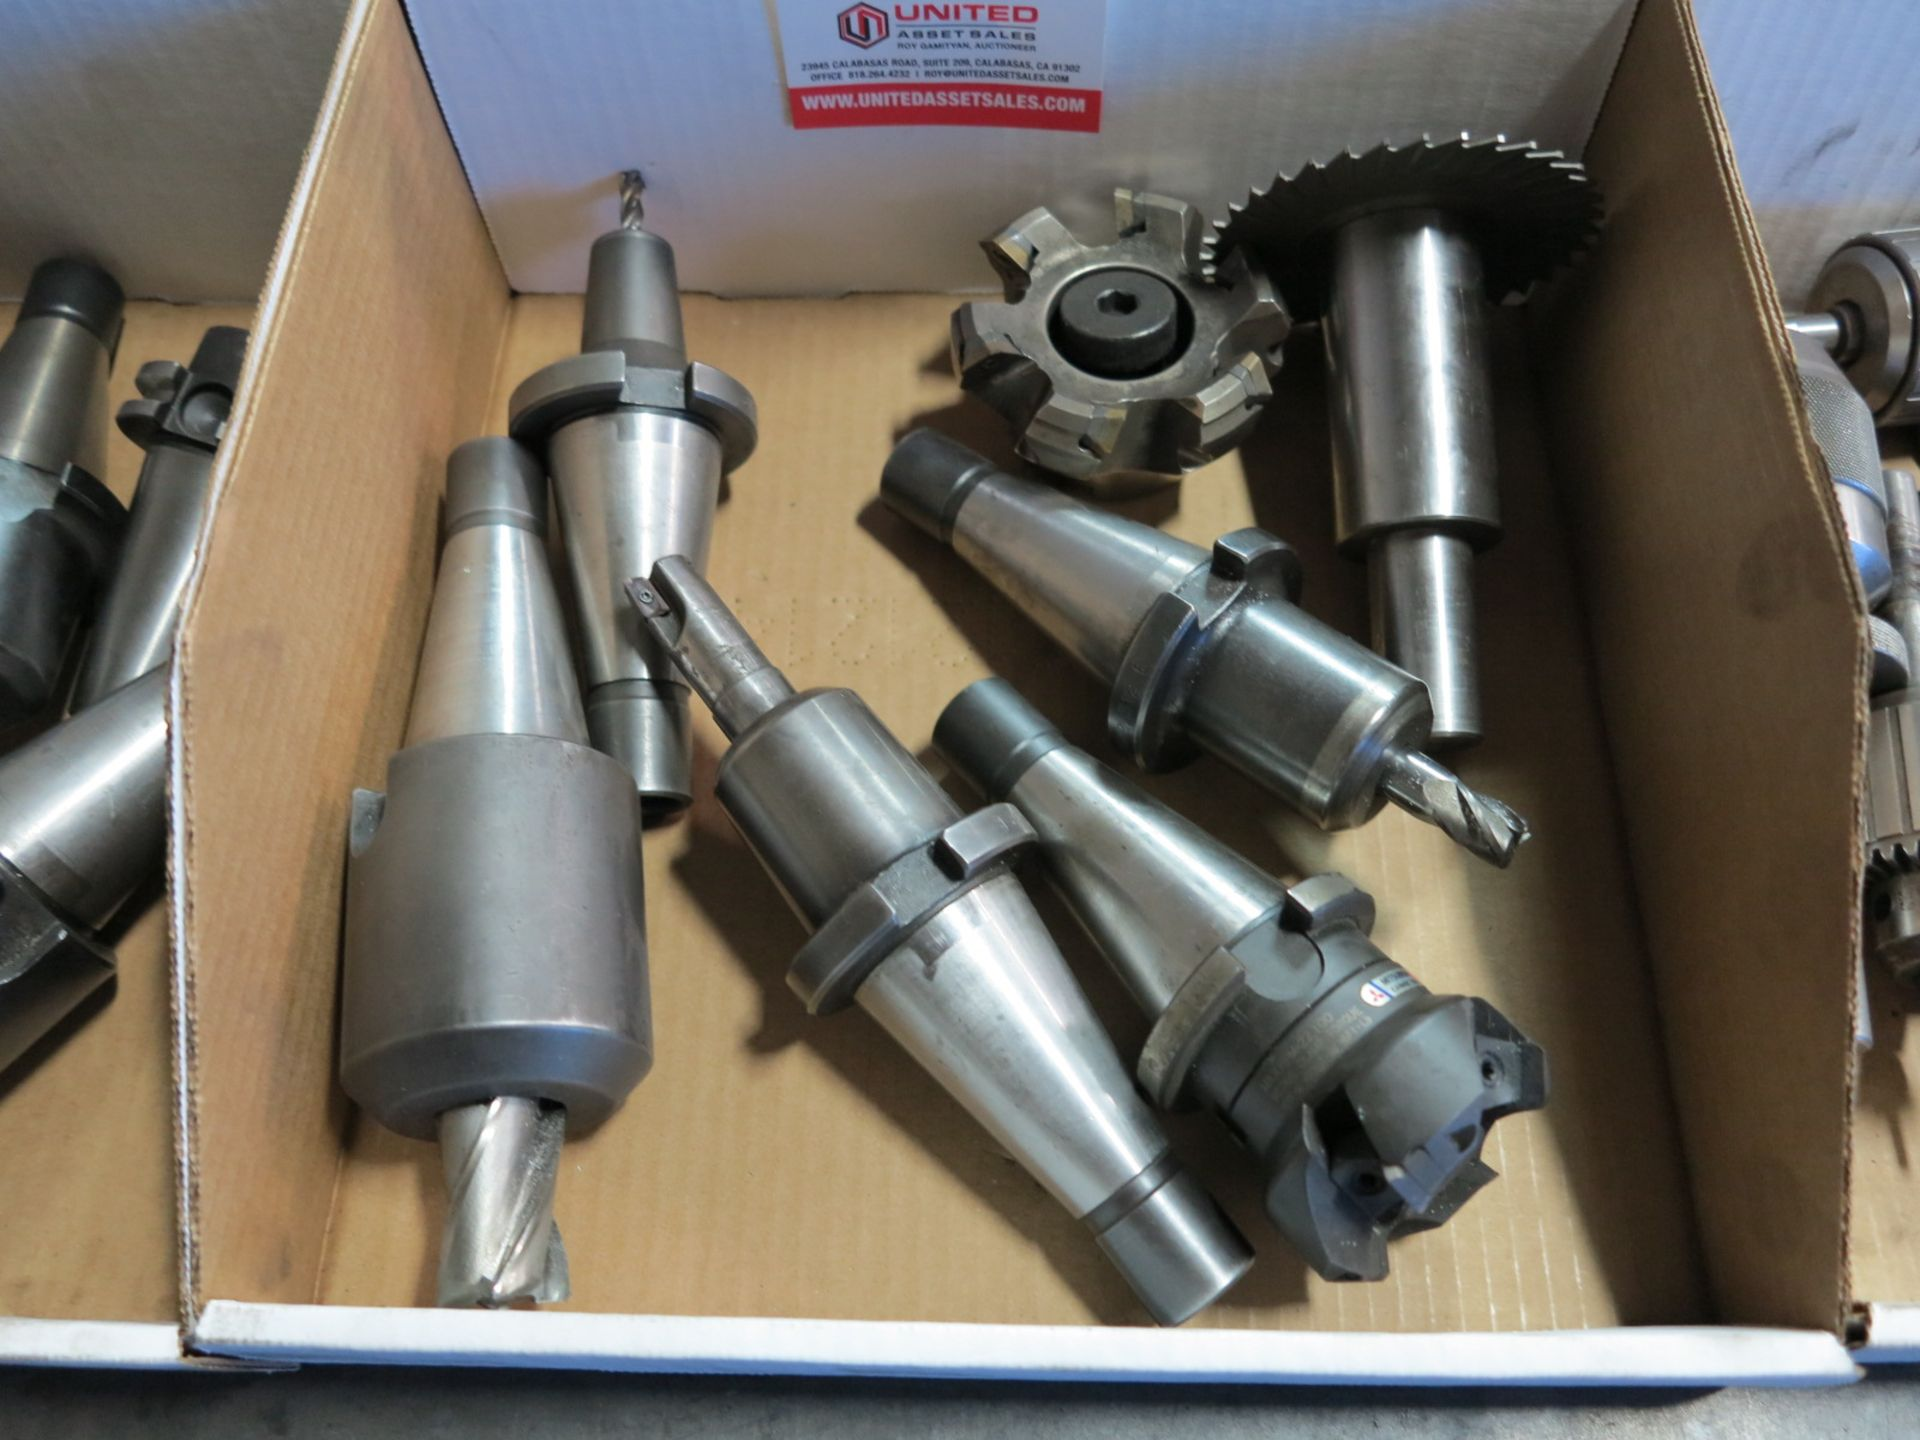 Lot 23 - LOT - (3) BOXES OF 40 TAPER TOOL HOLDERS, TOOLING, CHUCKS AND 5C COLLETS